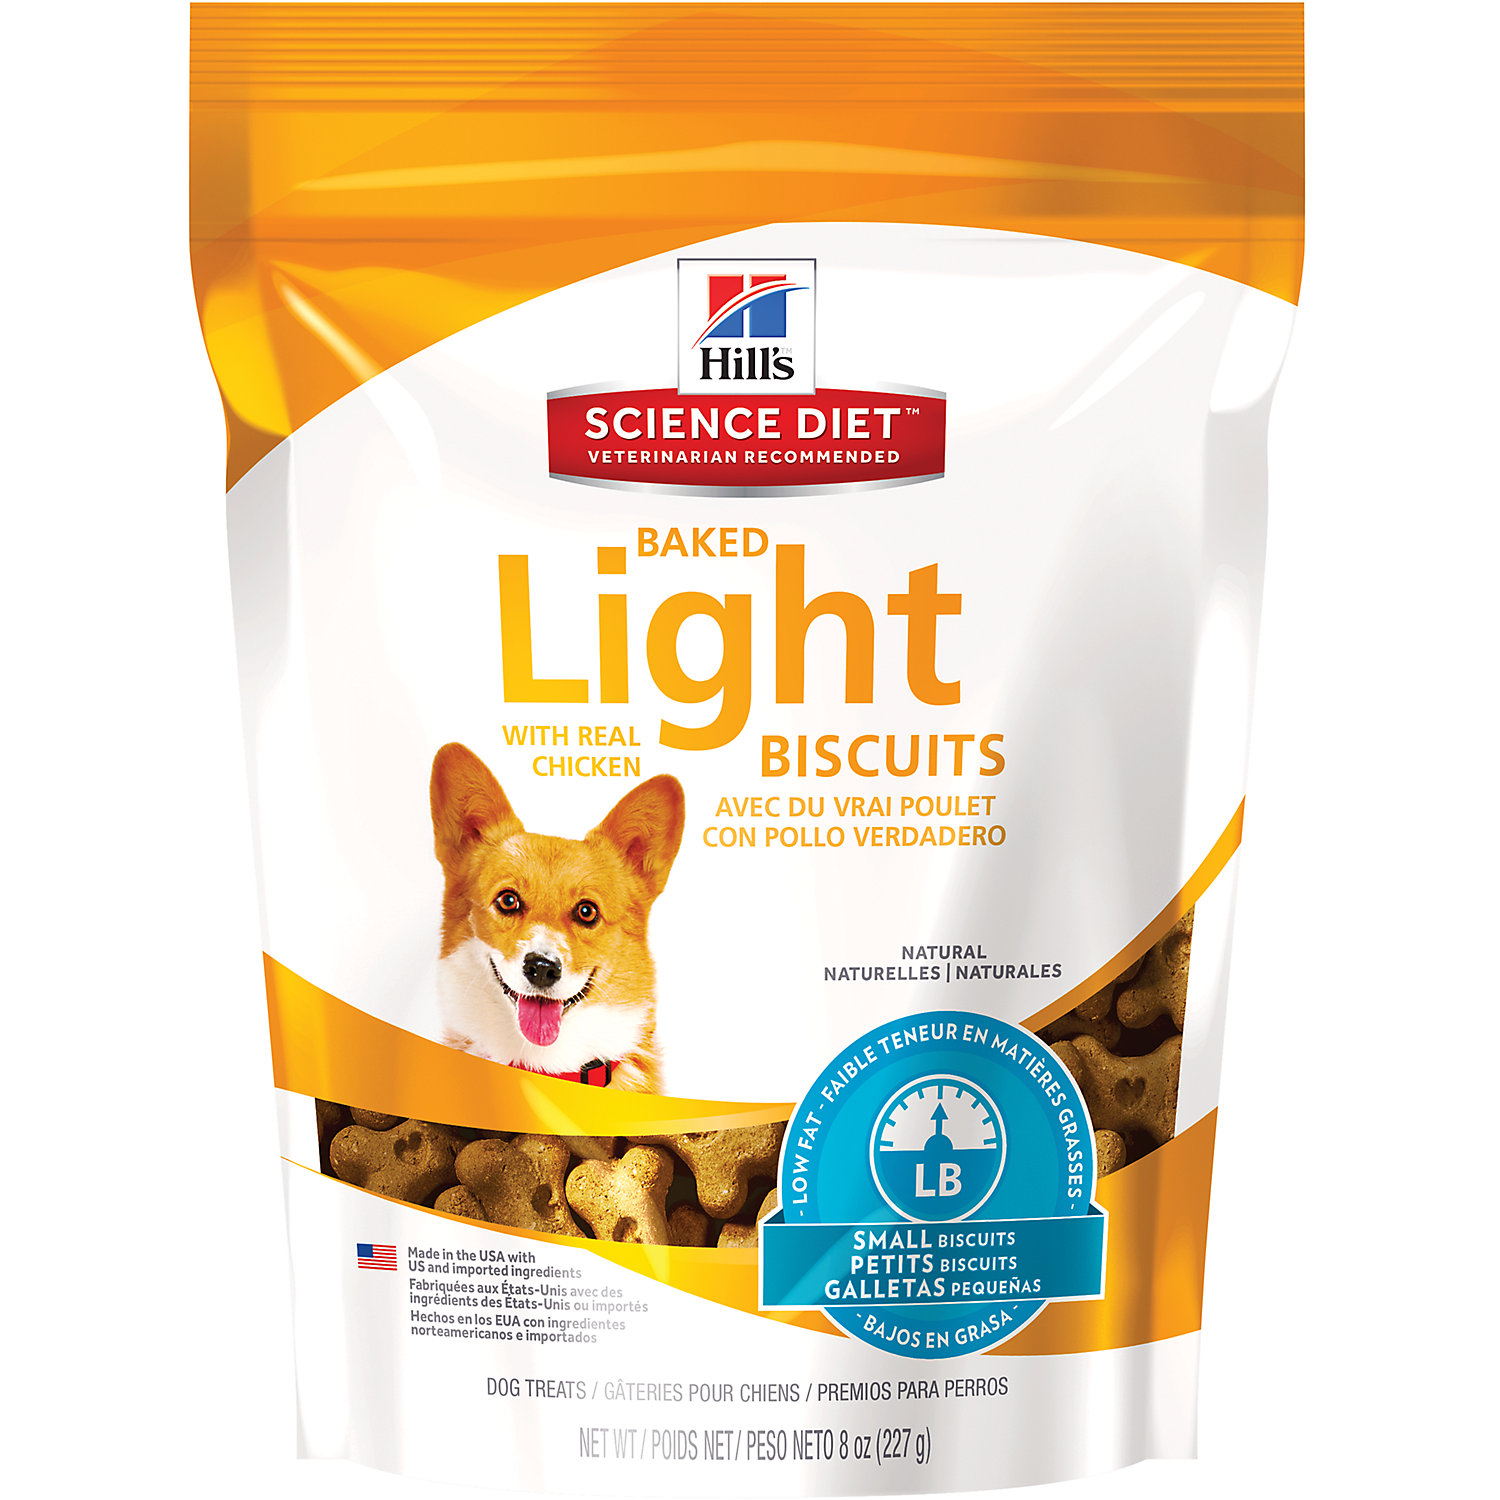 Hills Science Diet Baked Light Biscuits With Real Chicken Small Dog Treats 8 Oz Bag